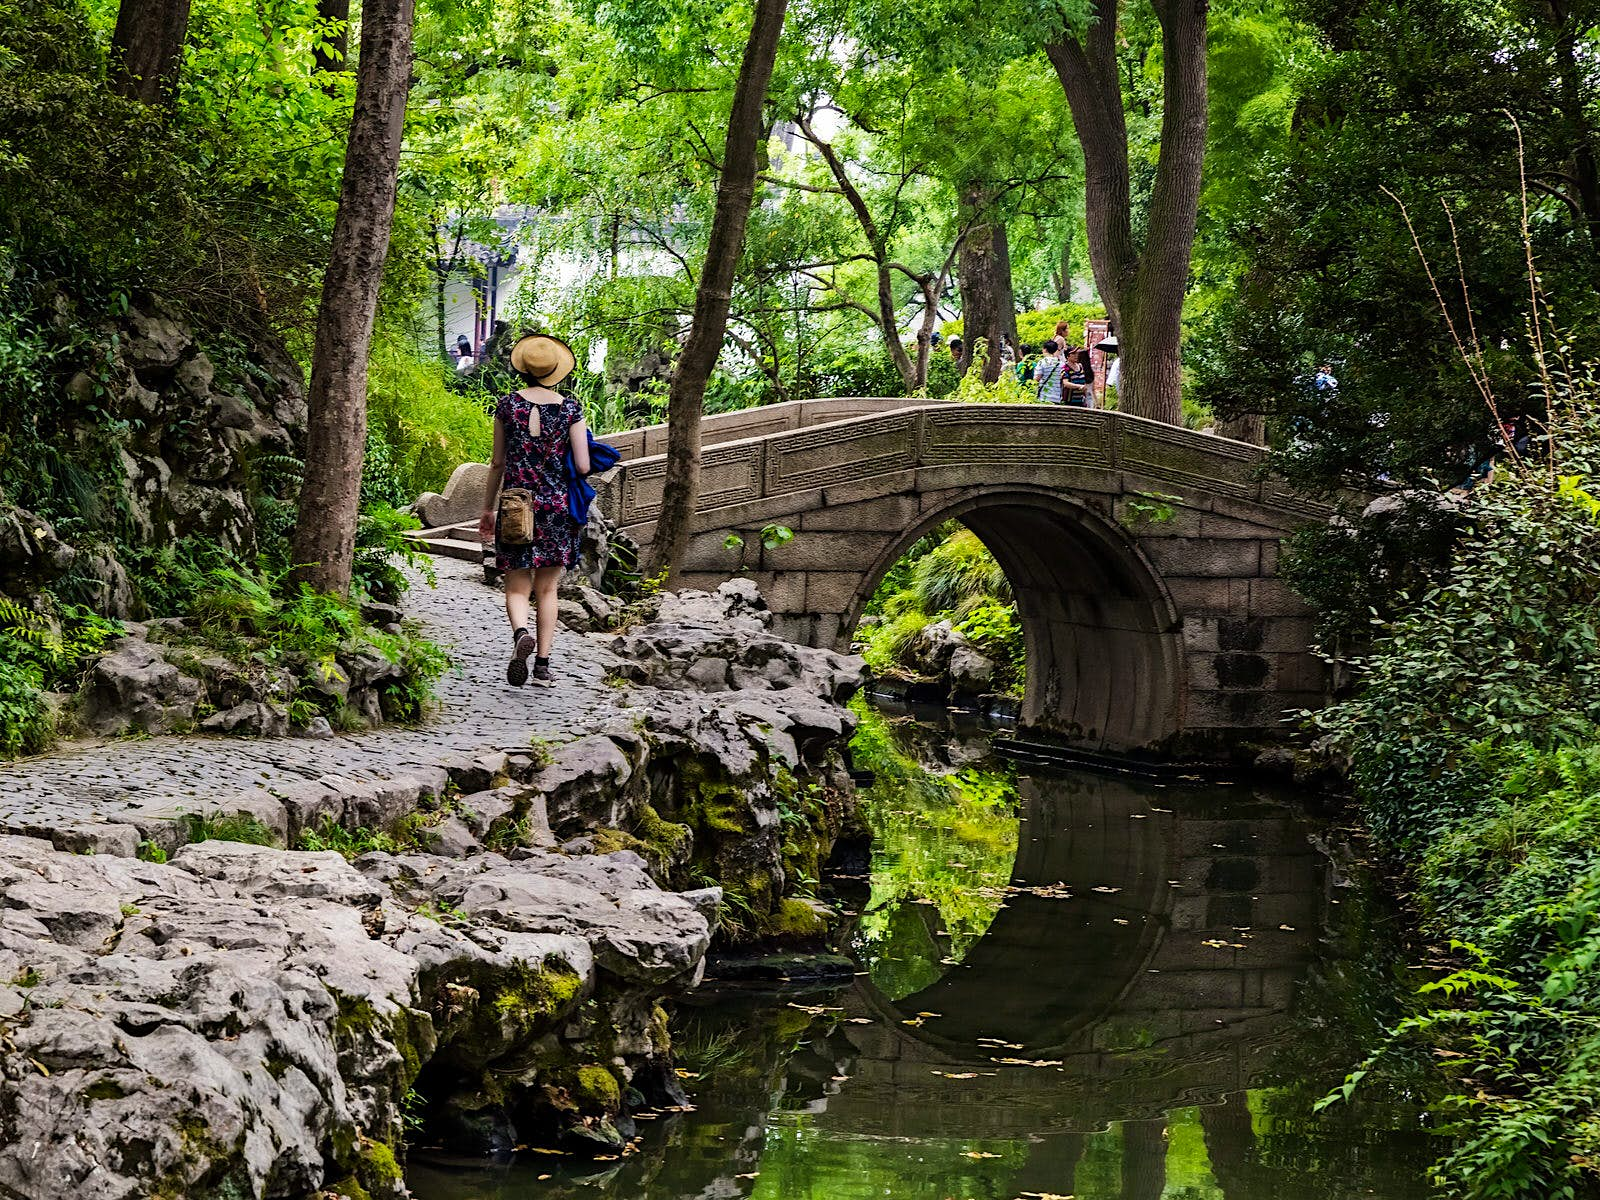 A tourist walks along a rocky forest path next to a pond with stone bridge. The serene paths of the Humble Administrator's Garden were restored in the 1950s © posztos / Shutterstock